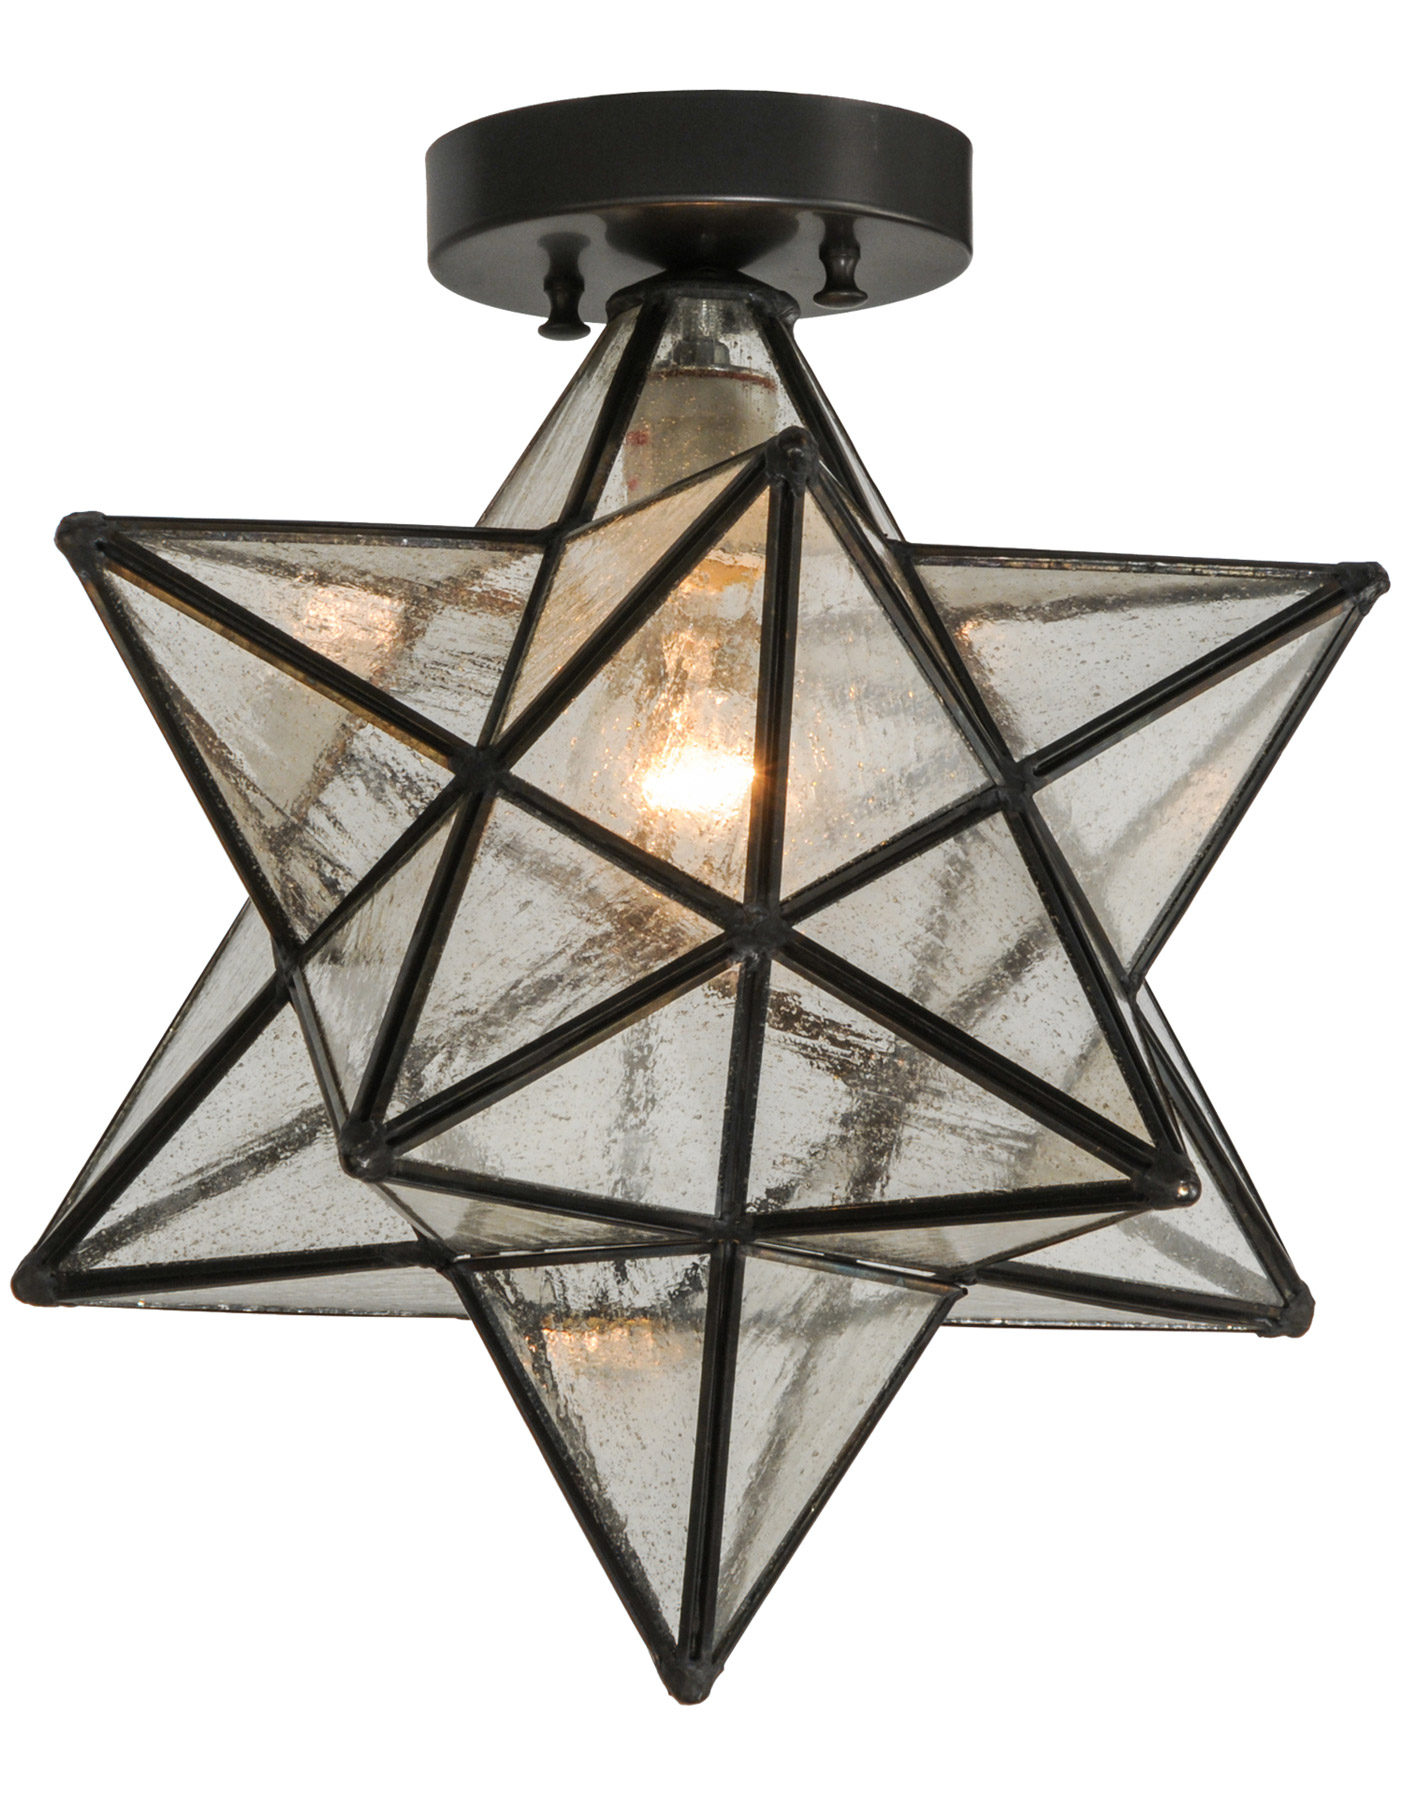 star ideas hanging ceiling light fixture lighting christmas room with moravian topper decorative of mcgrecords design lights was the decorating highlight fixtures tree com definitely